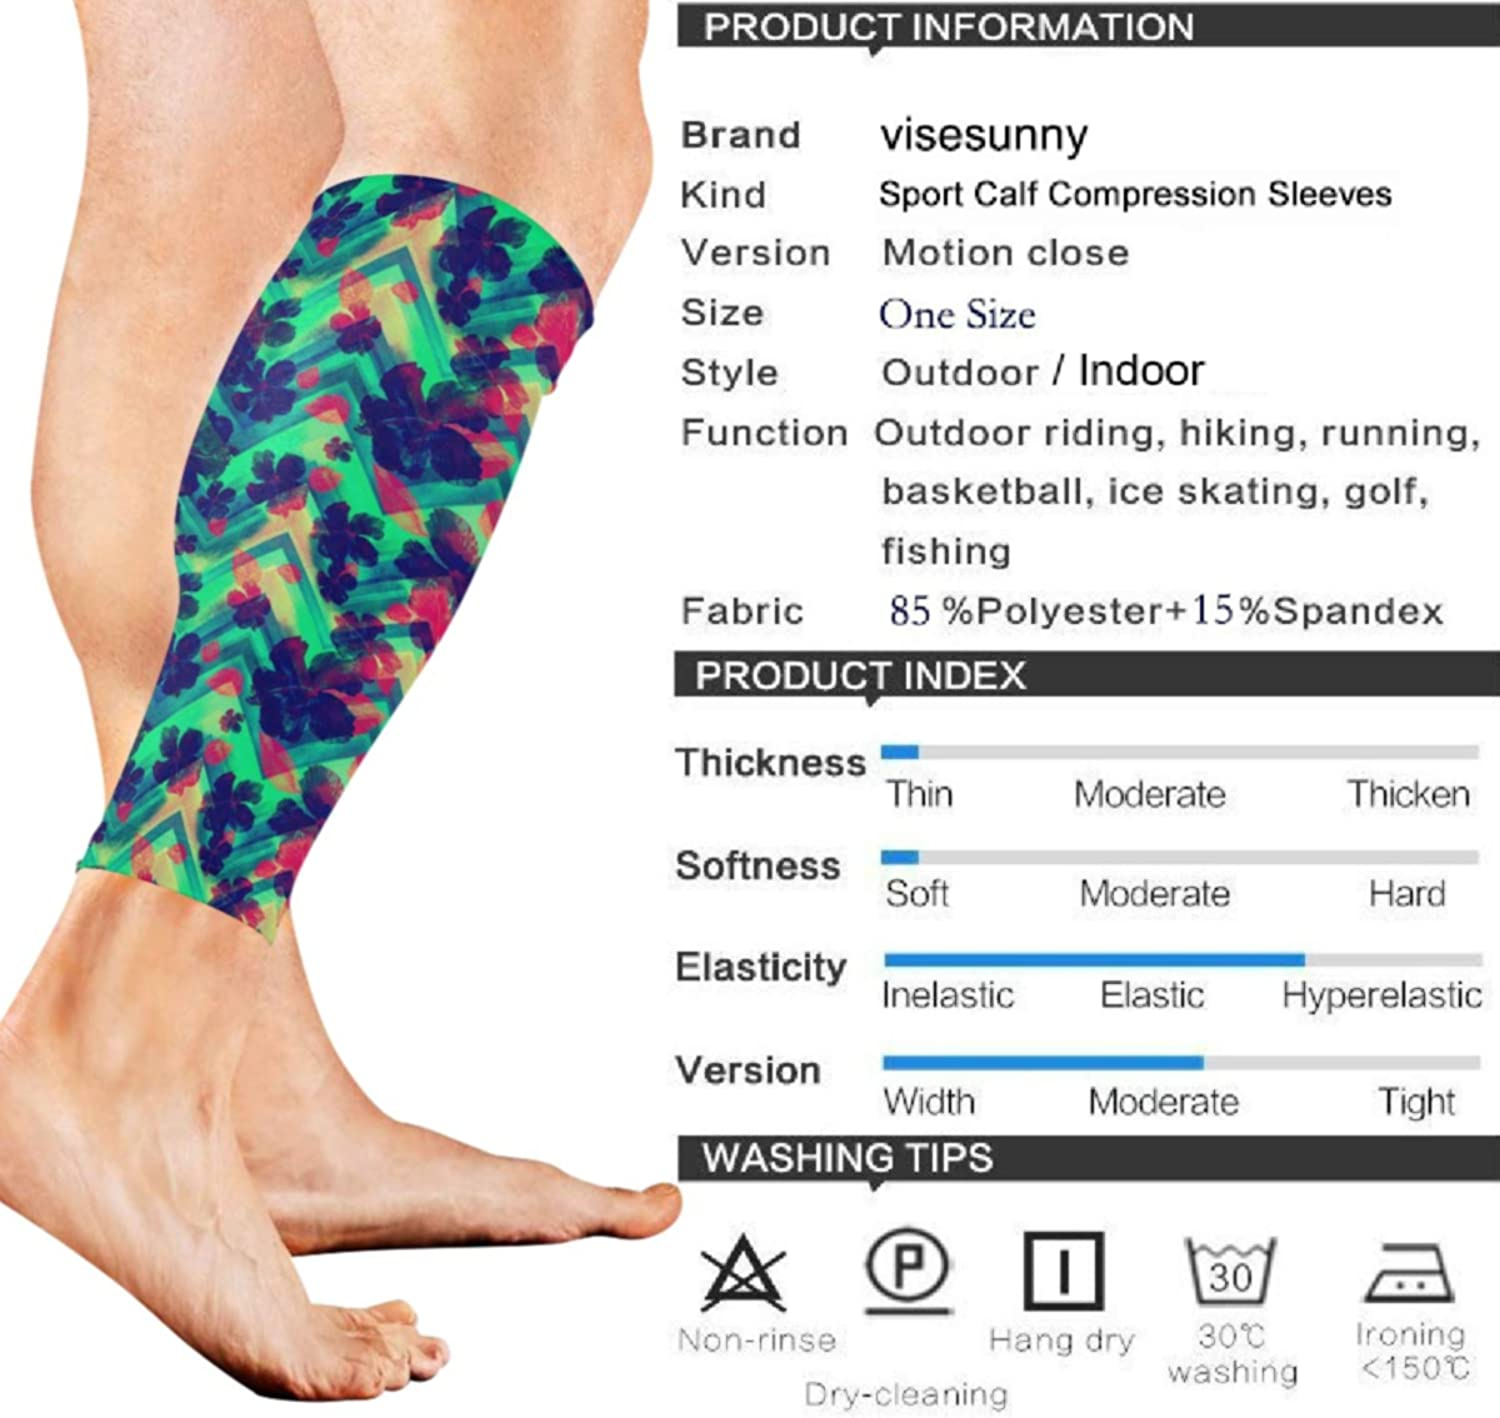 visesunny Cool Floral Pattern Print Sports Calf Support Sleeves for Muscle Pain Relief, Improved Circulation Compression Effective Support for Running, Jogging,Workout,Recovery(1 Pair)